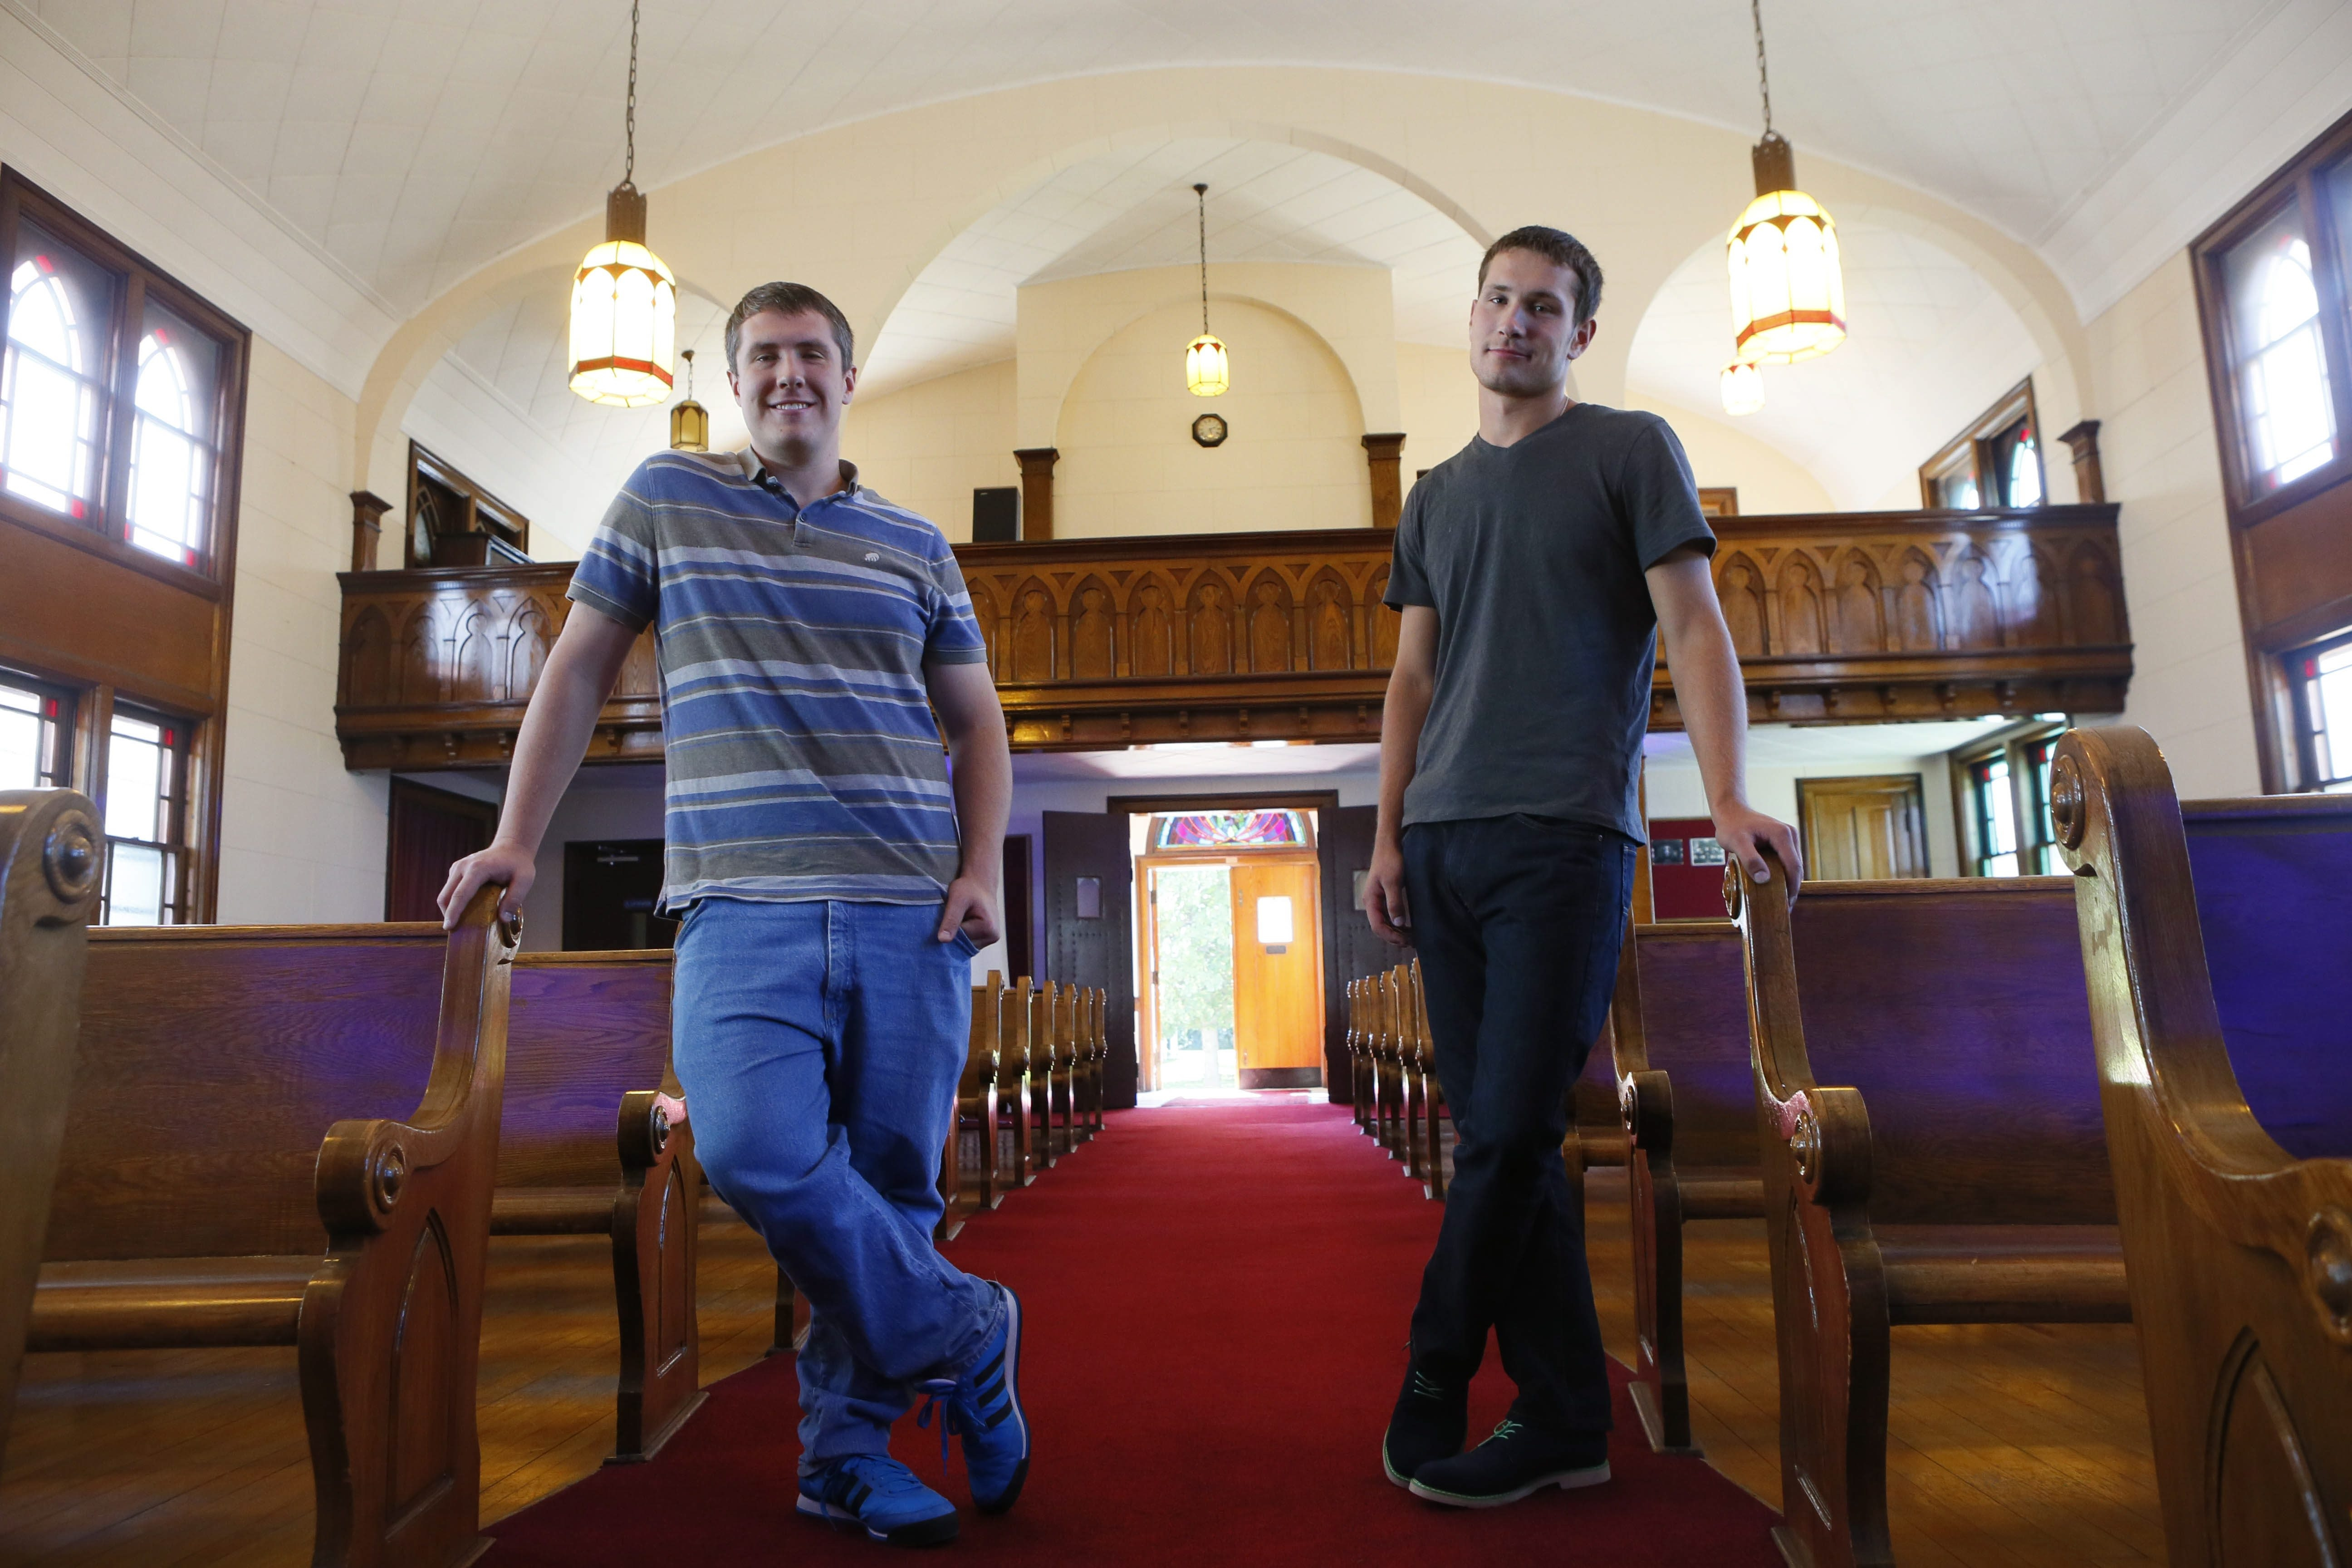 Pastor Matthew Richbart, left, and his brother, Associate Pastor Mike Richbart, are launching iHope Community Church in North Tonawanda at a special service scheduled for 11 a.m. today.